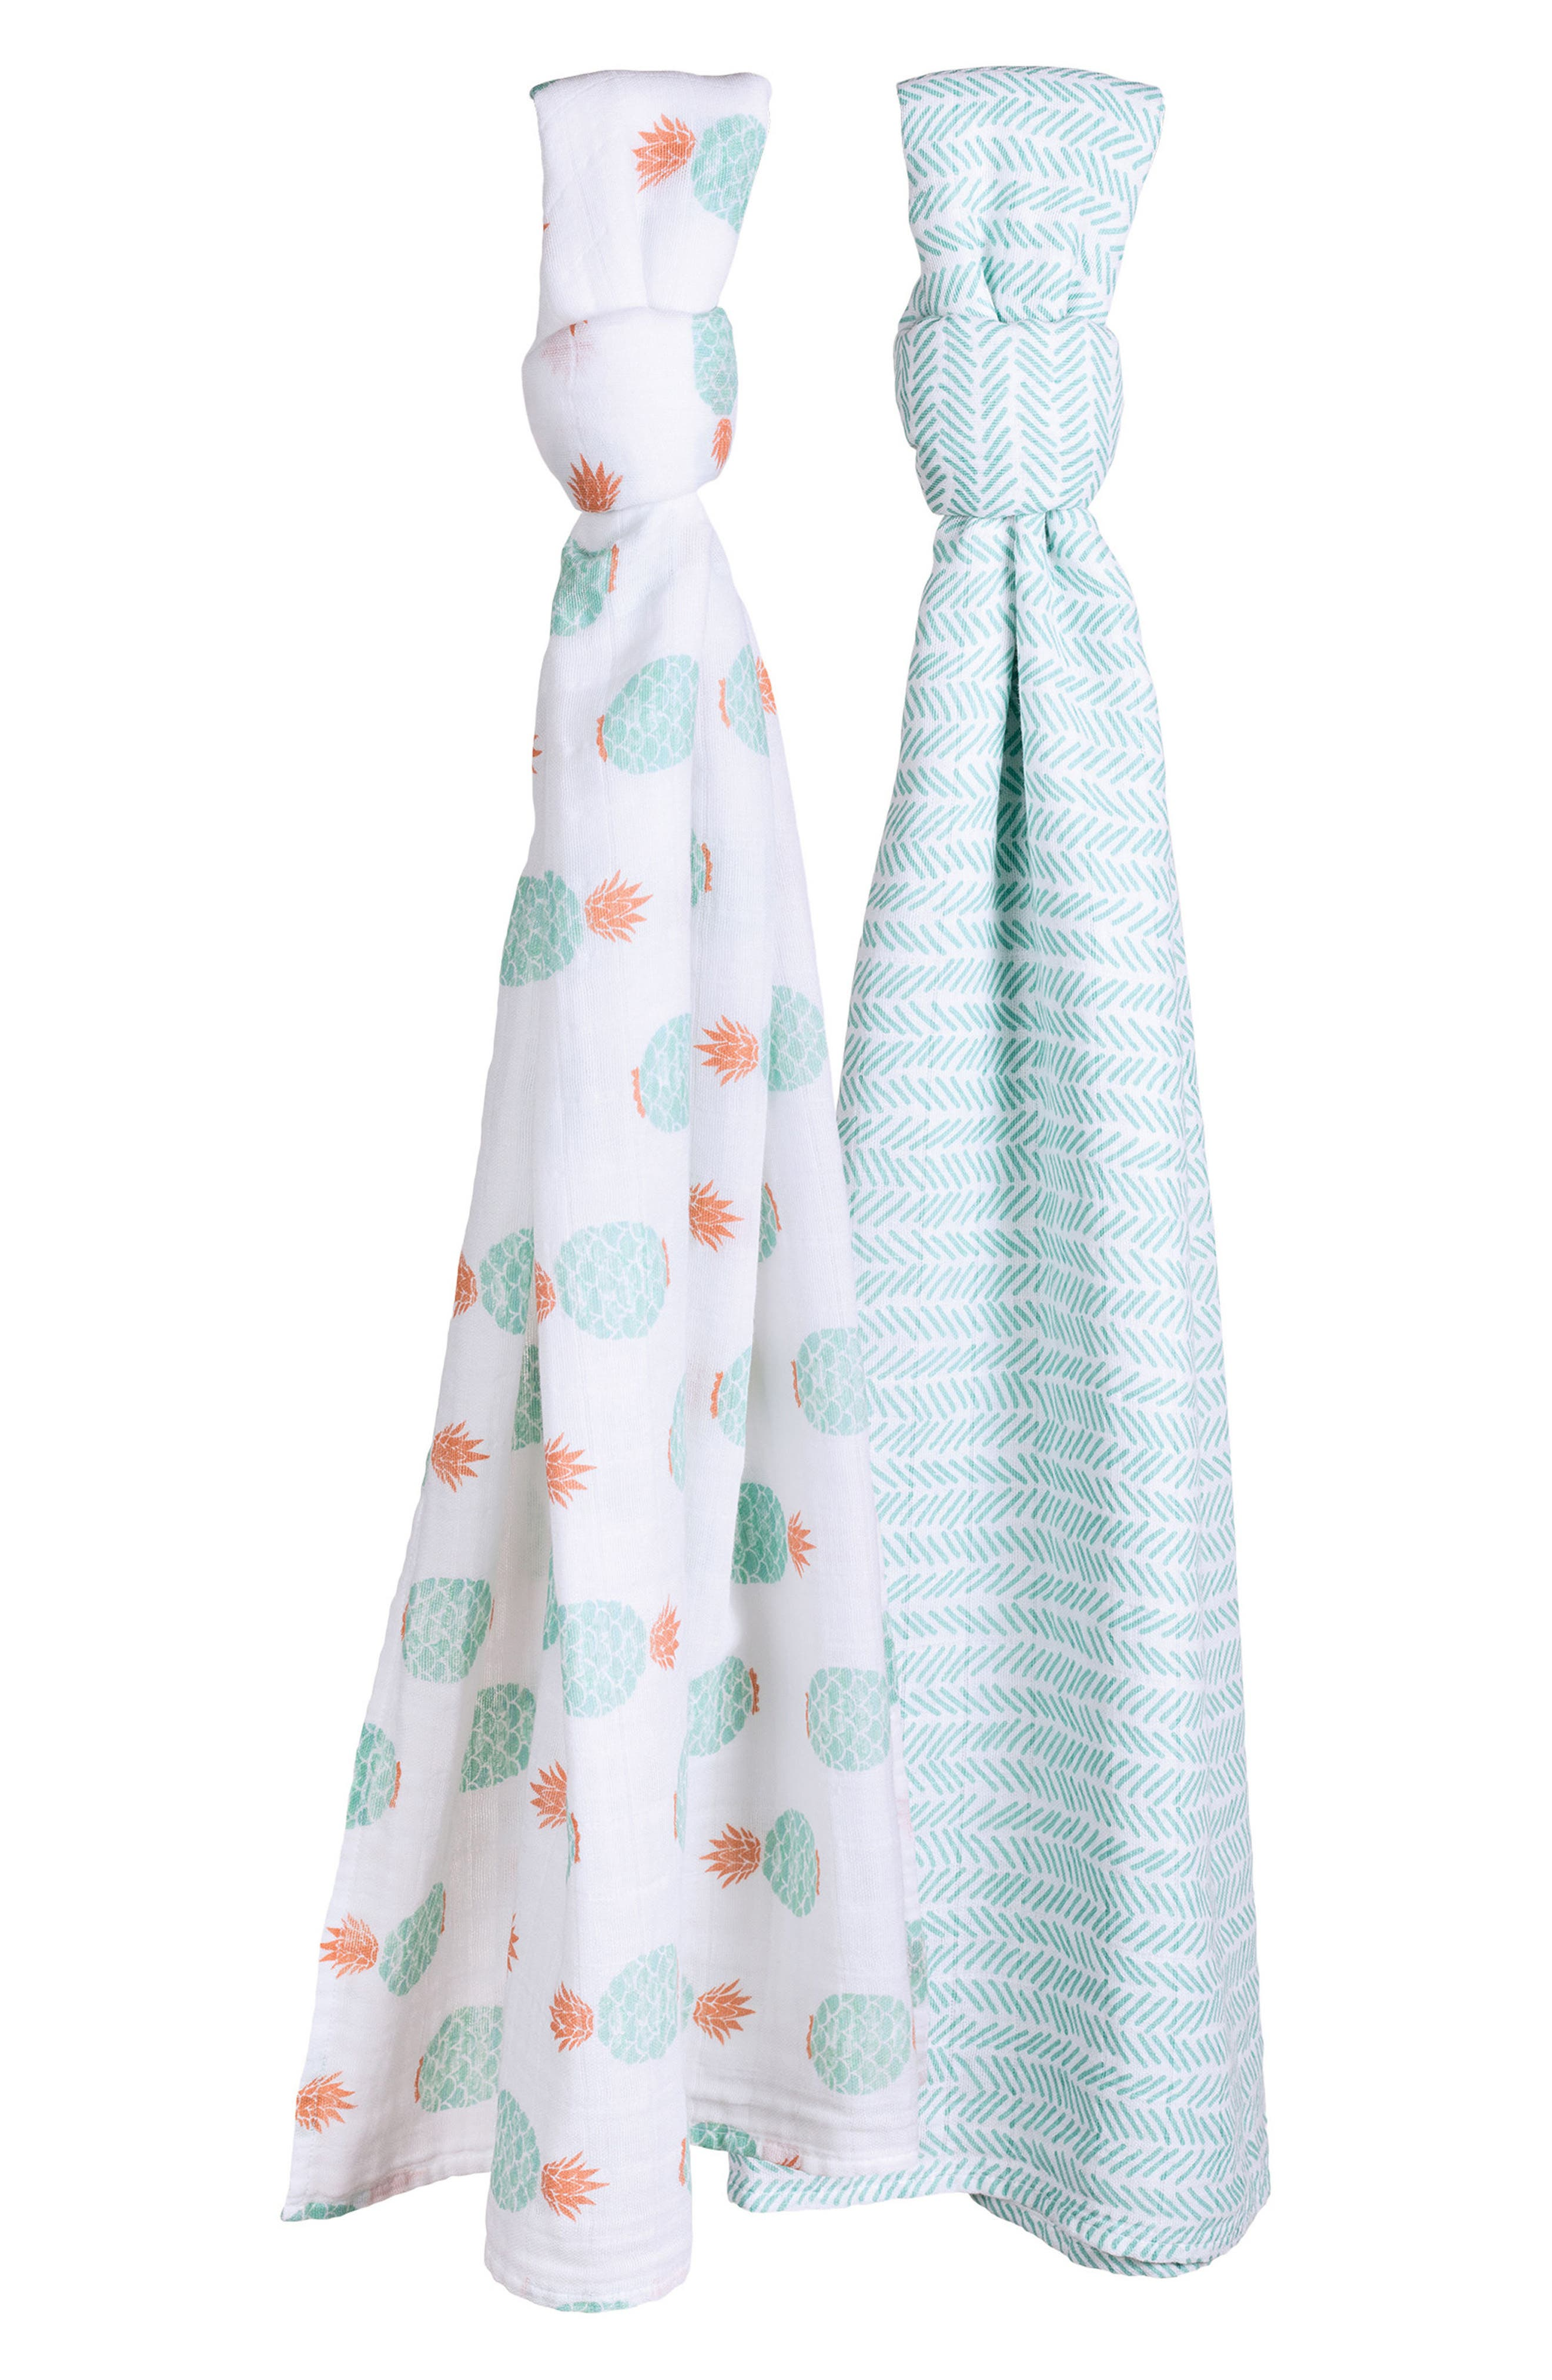 2-Pack Muslin Swaddle Blankets,                             Main thumbnail 1, color,                             340